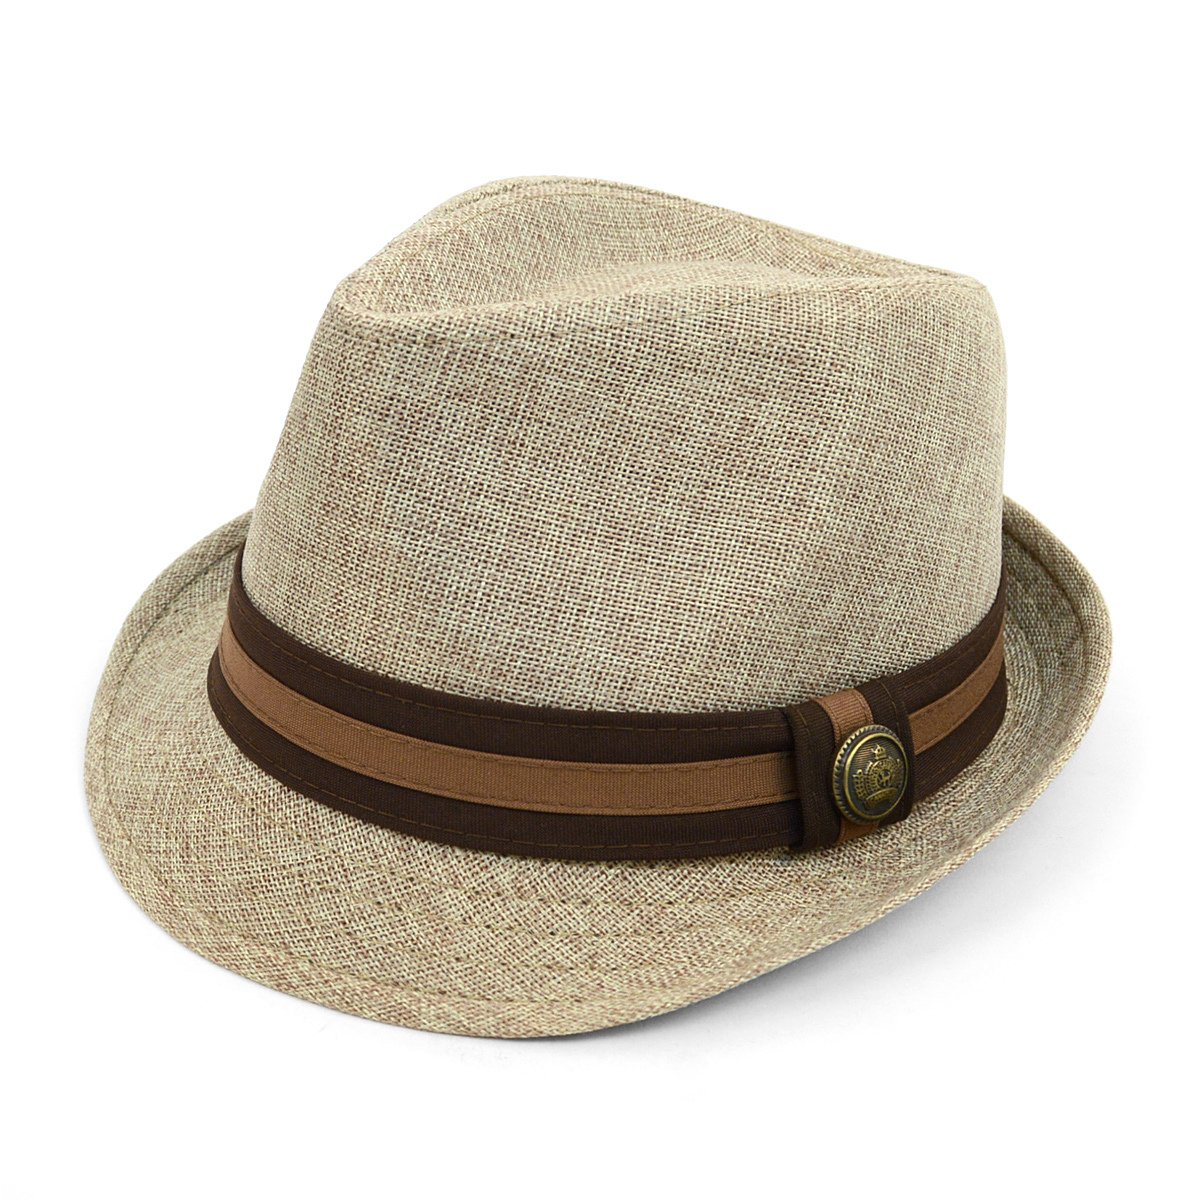 71fb9e5a79fd4 West End Linen Weave Fashion Fedora with Two-Tone Band & Button: Amazon.ca:  Clothing & Accessories